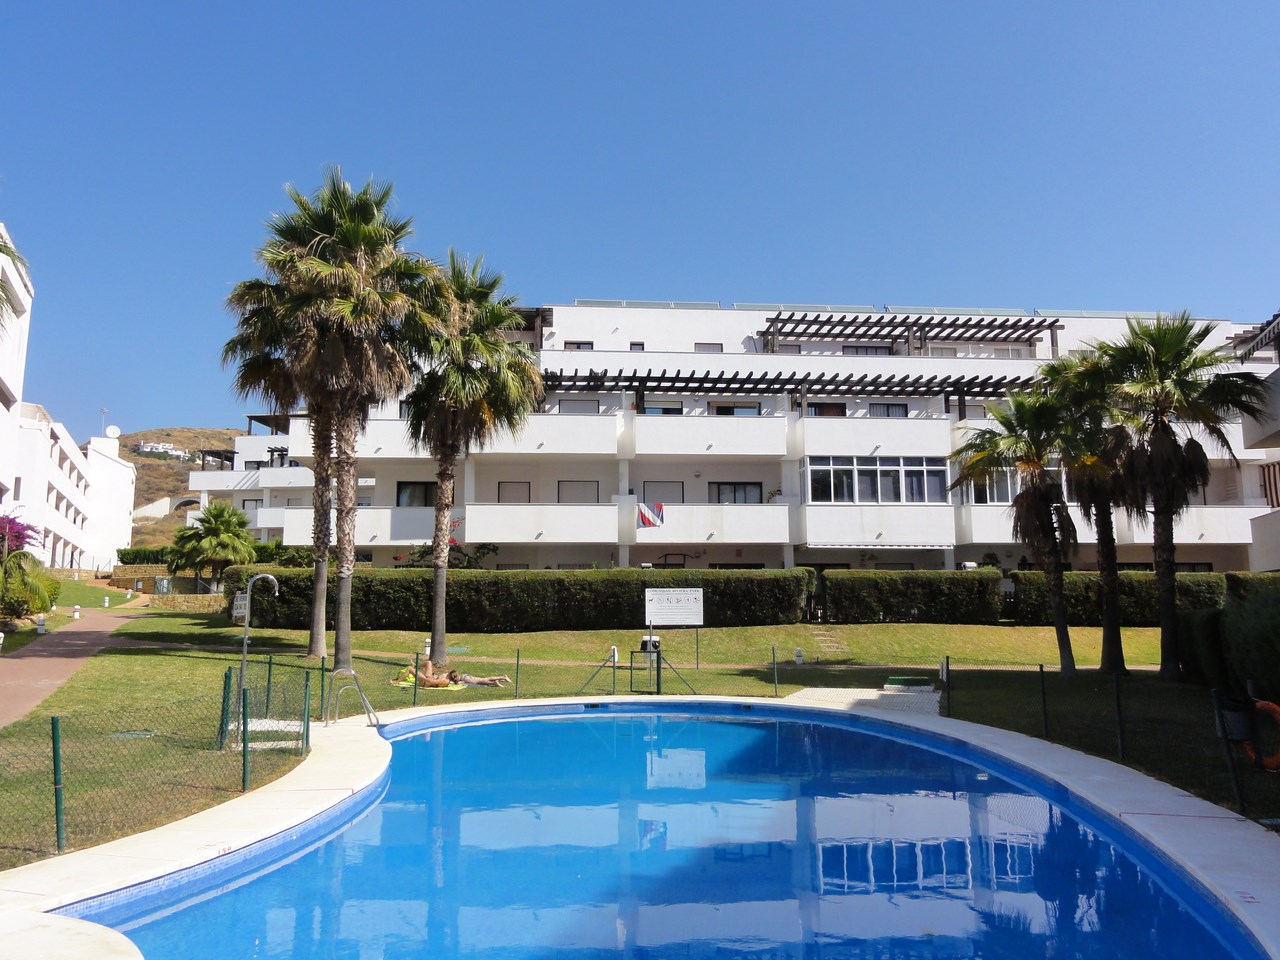 Riviera Park apartment for sale in Riviea del Sol Malaga